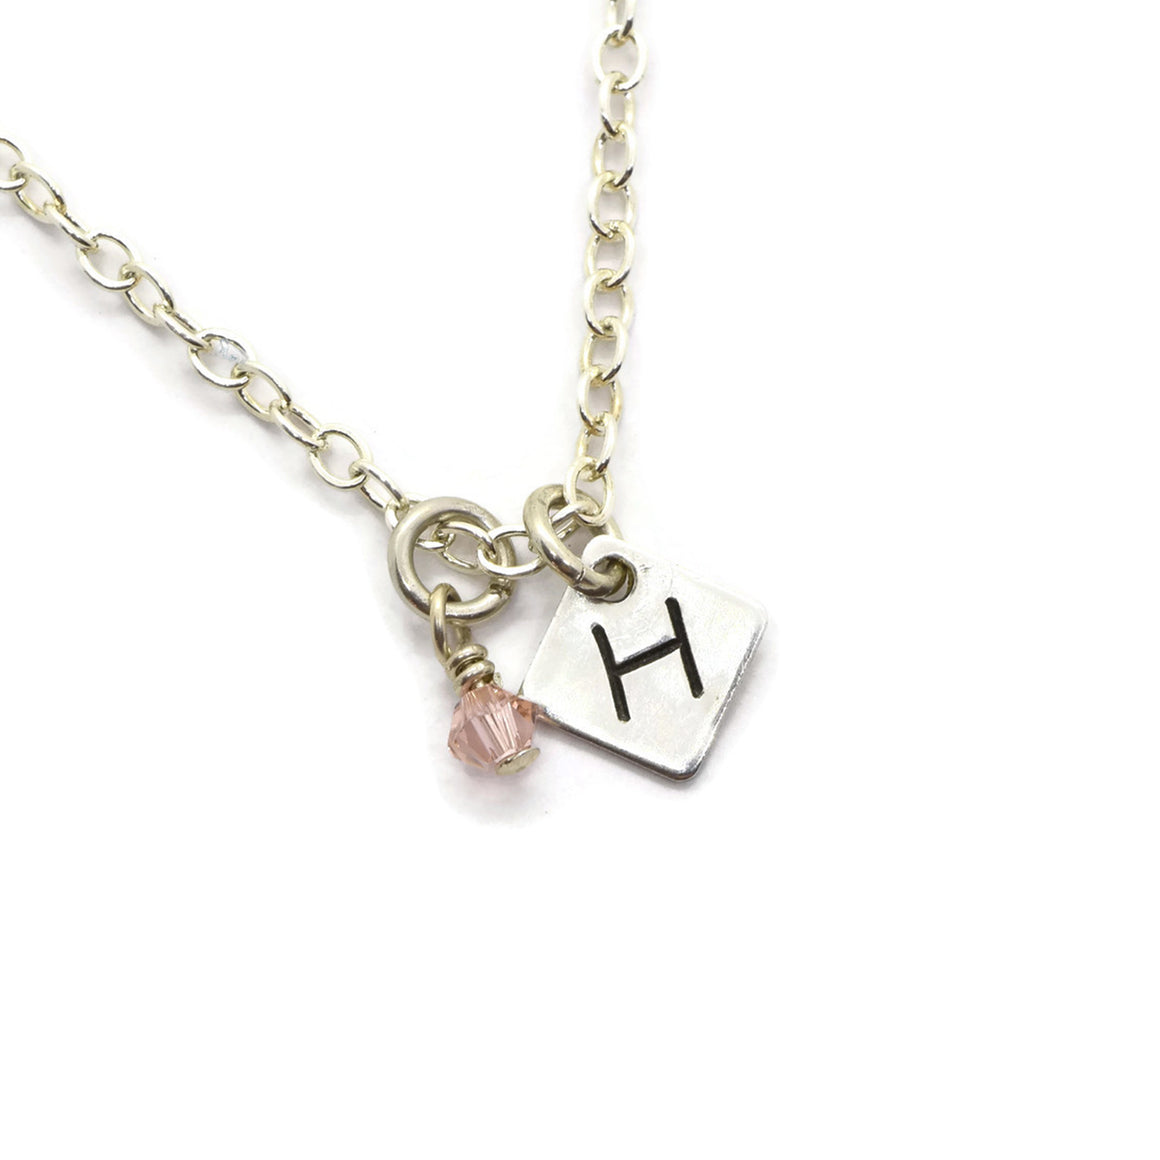 Min-I-nitials Silver Family Necklace - Cloverleaf Jewelry